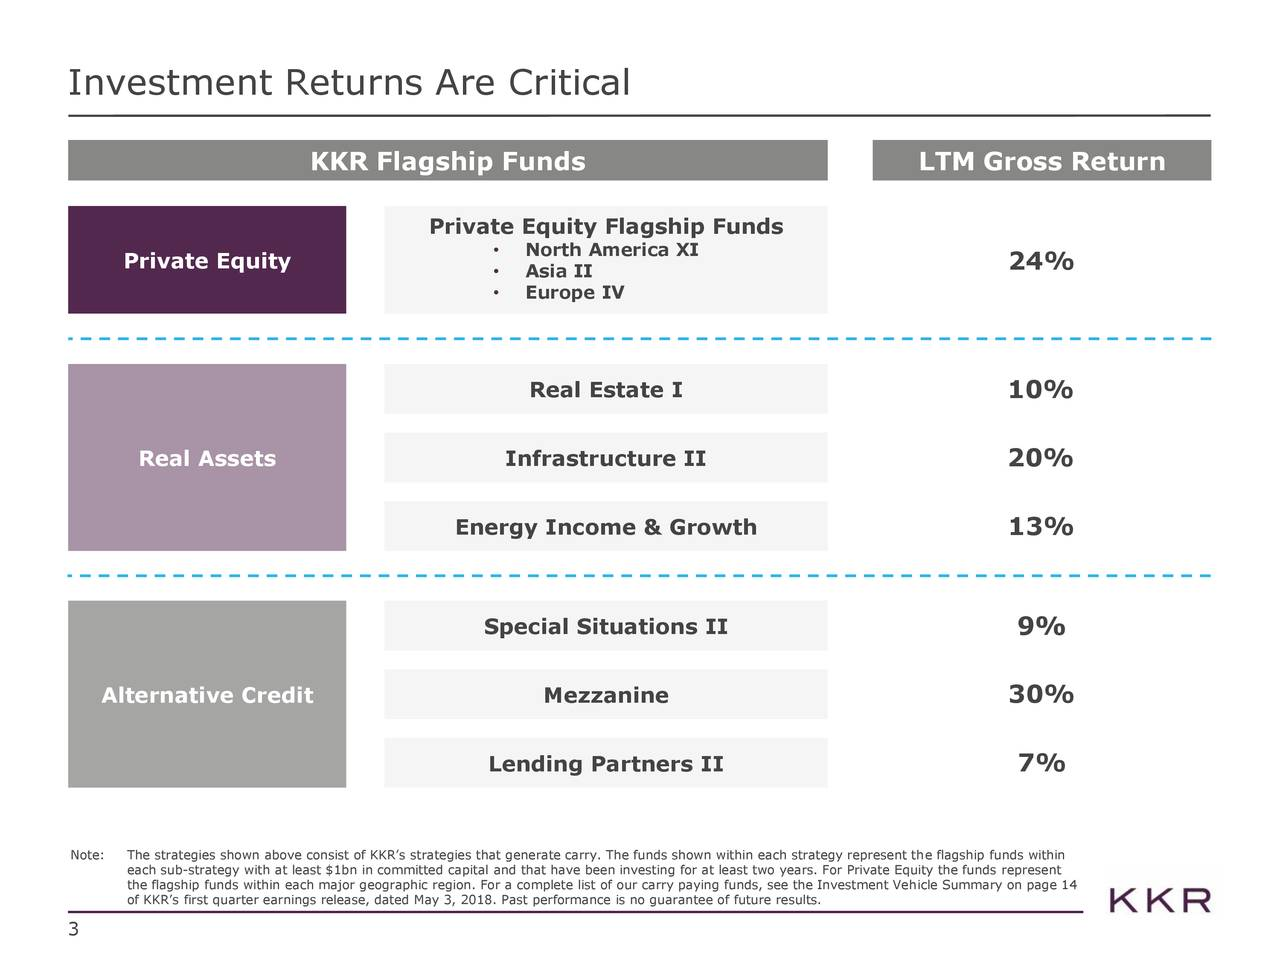 KKR Flagship Funds LTM Gross Return Private Equity Flagship Funds Private Equity • North America XI 24% • Asia II • Europe IV Real Estate I 10% Real Assets Infrastructure II 20% Energy Income & Growth 13% Special Situations II 9% Alternative Credit Mezzanine 30% Lending Partners II 7% Note:The strategies shown above consist of KKR's strategies that generate carry. The funds shown within each strategy represent the flagship funds within the flagship funds within each major geographic region. For a complete list of our carry paying funds, see the Investment Vehicle Summary on page 14t of KKR's first quarter earnings release, dated May 3, 2018. Past performance is no guarantee of future results. 3